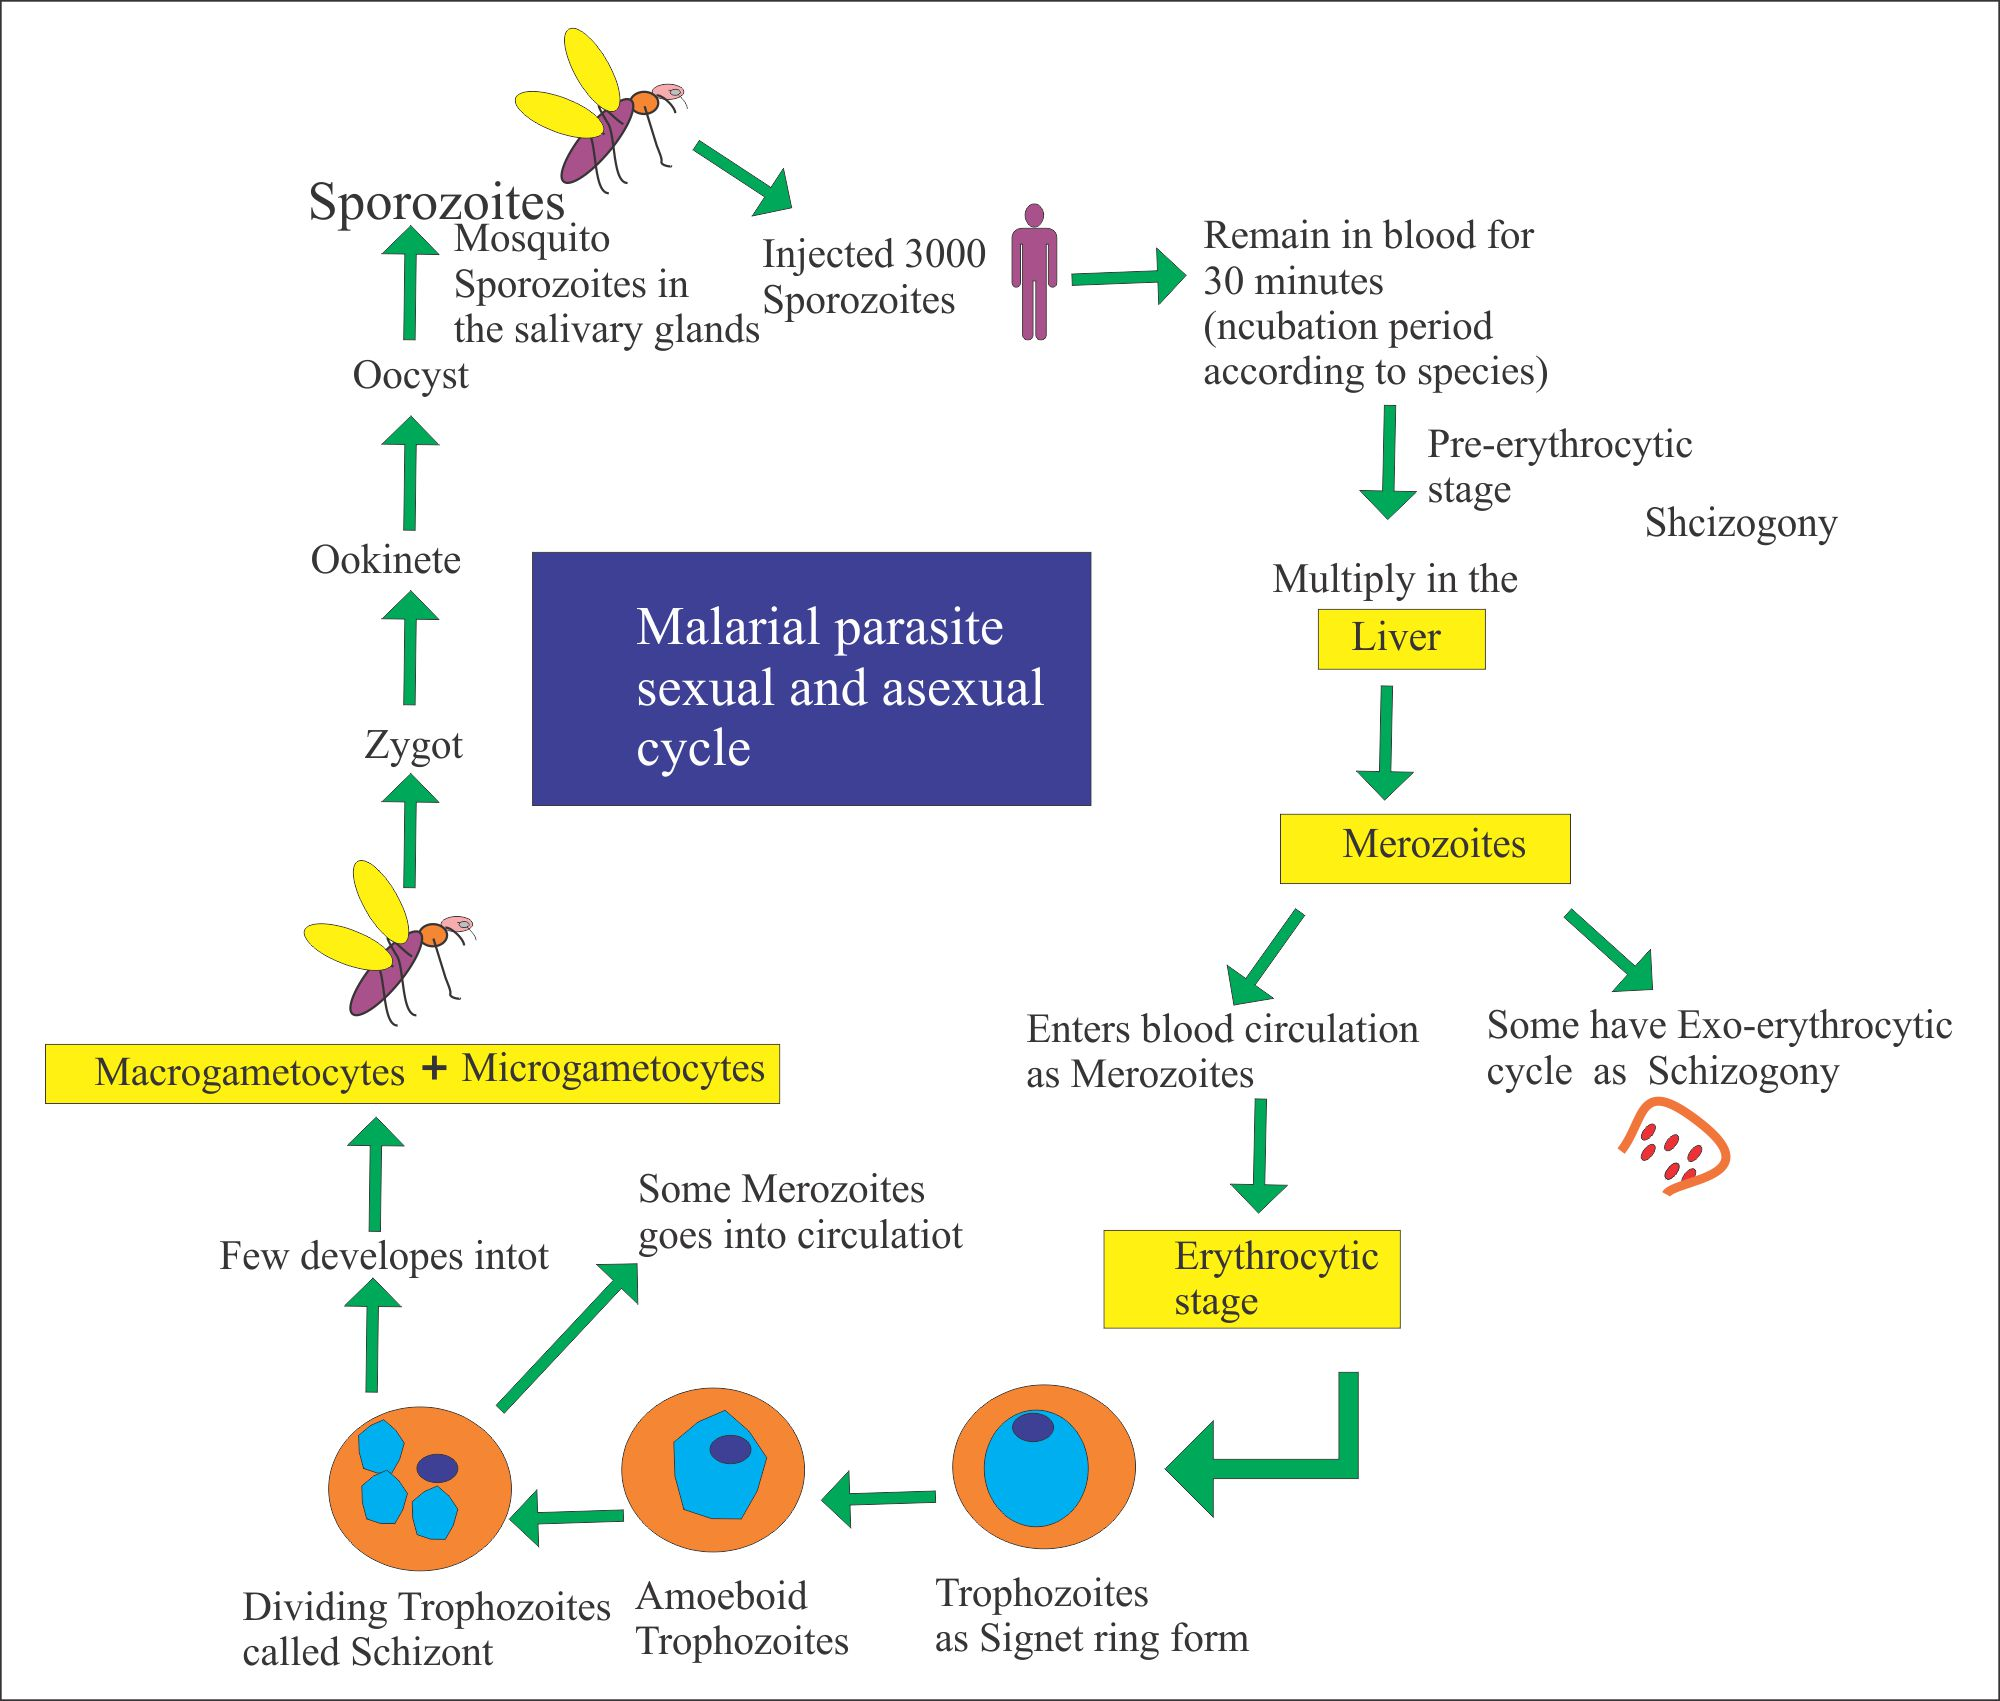 MP sexual and asexual cycle